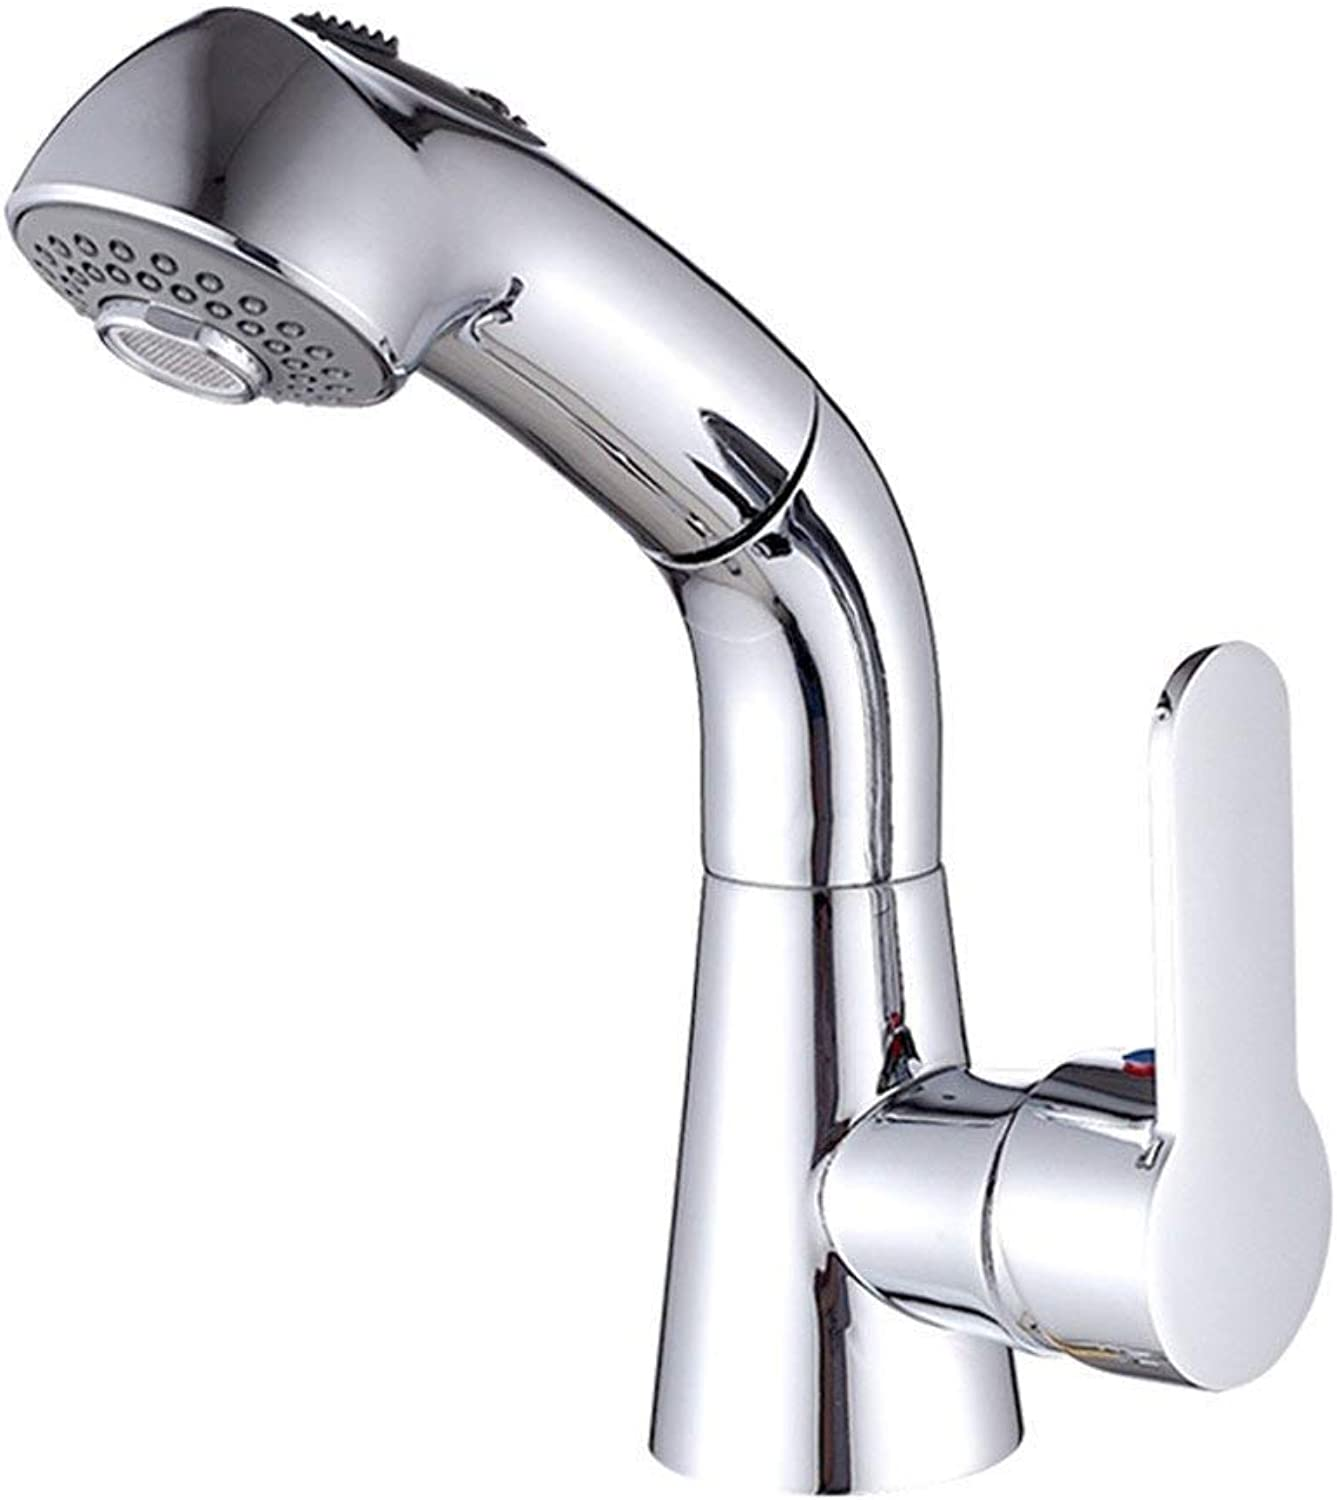 Oudan All Copper Main Pulling Faucet Telescopic Basin Faucet redating Hot and Cold Stretch Shower Shampoo,A (color   C, Size   -)